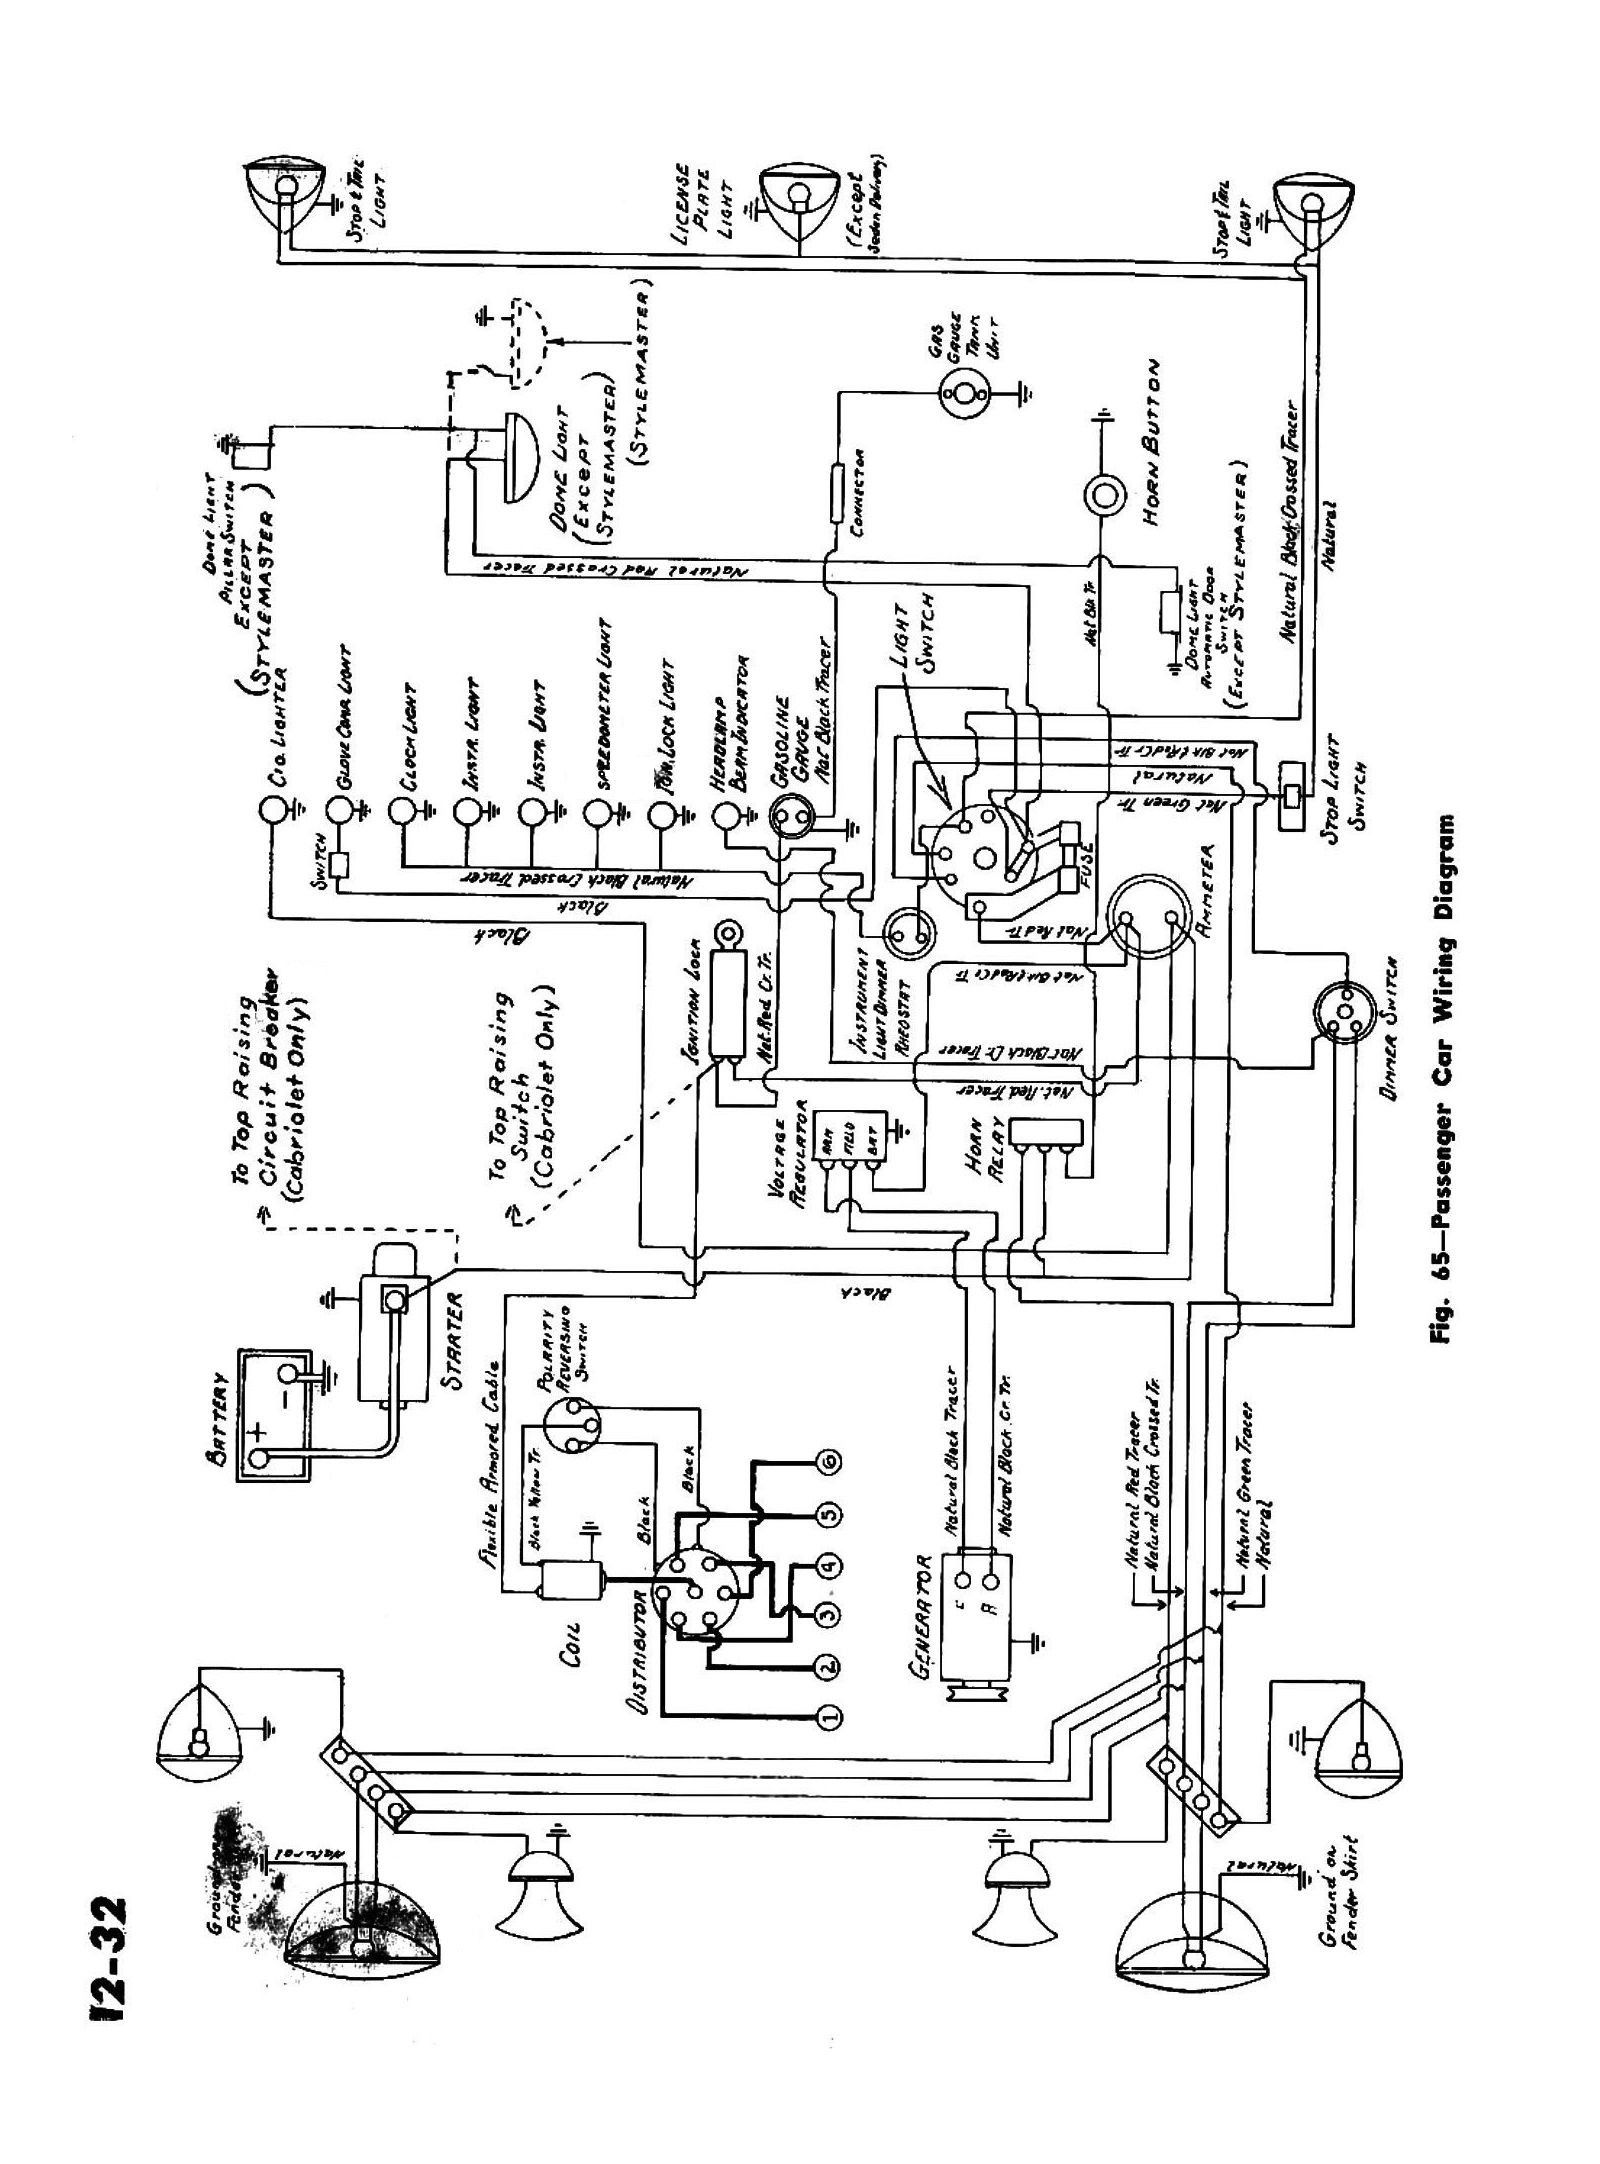 19 Stunning Free Auto Wiring Diagrams For You With Images